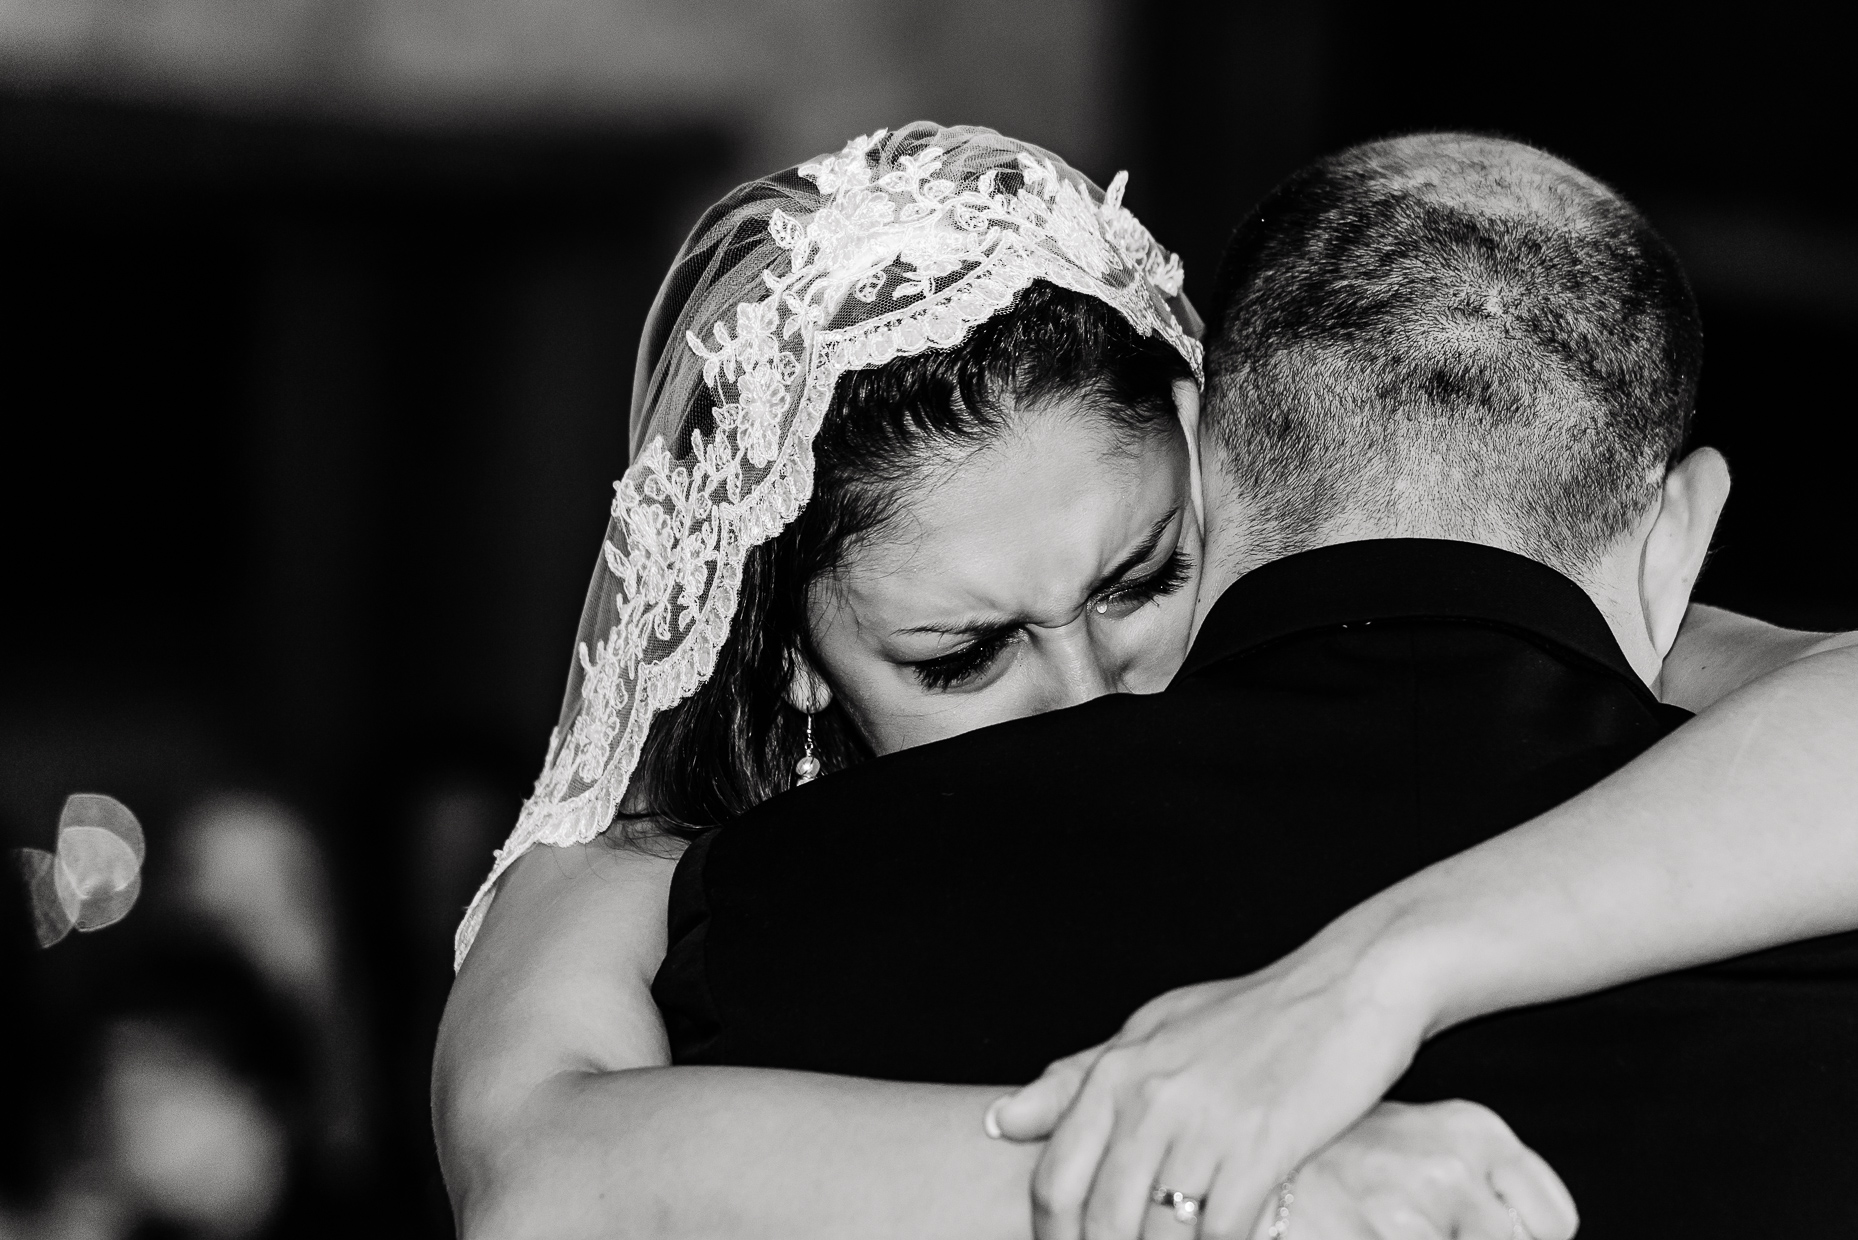 Austin-Wedding-Photographer-Embrace-Bride-Crying-Tear.jpg